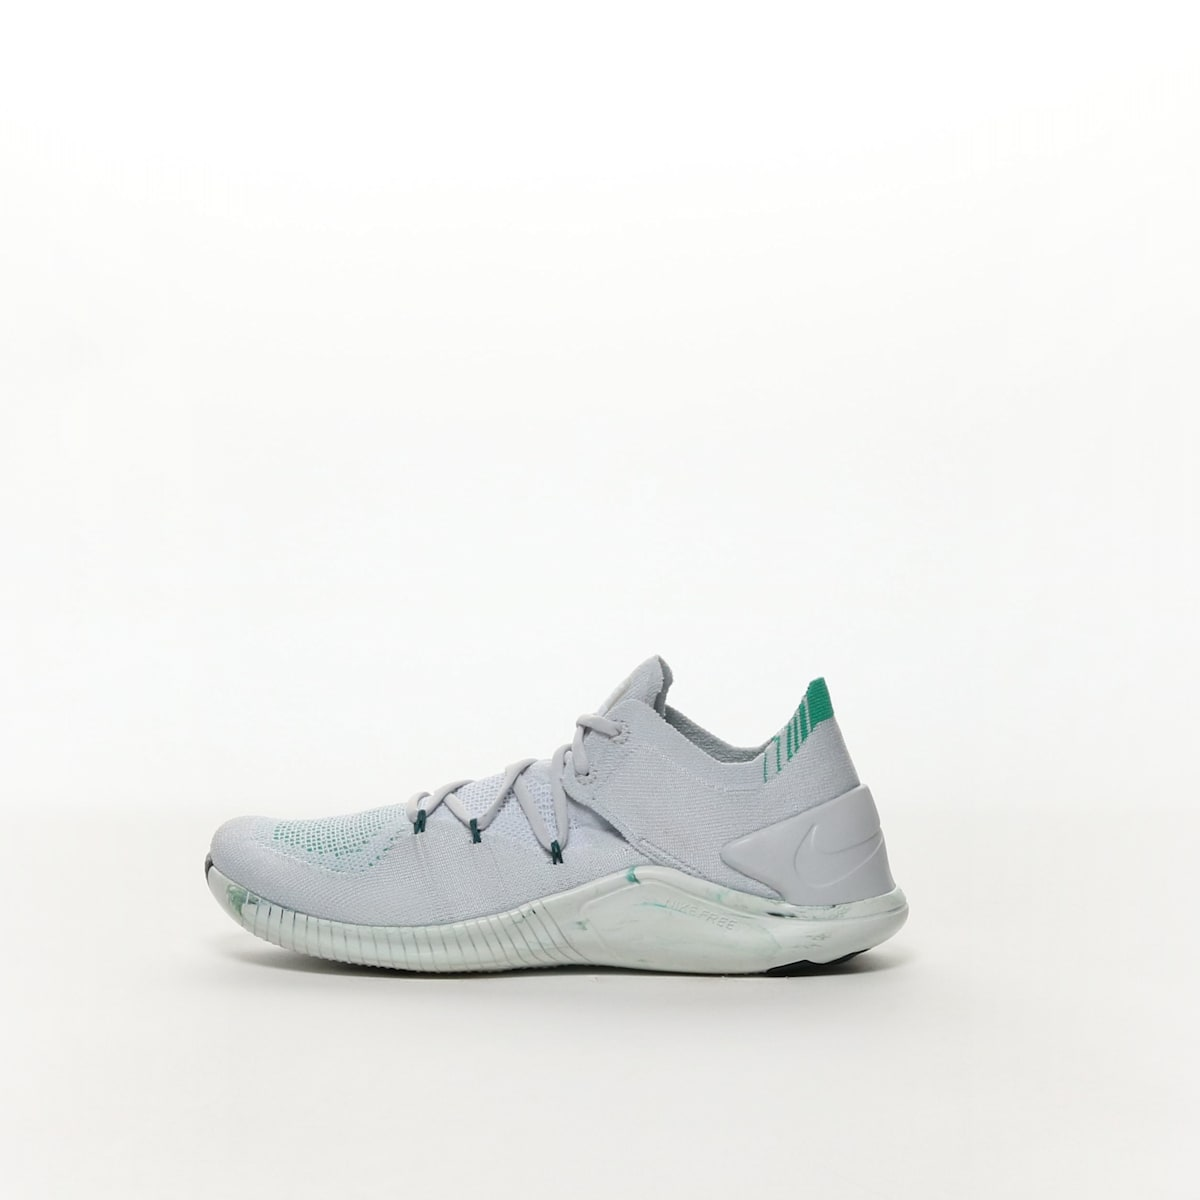 4c61d41aa370 Nike Free TR Flyknit 3 AMP Women s Training Shoe - PURE PLATINUM ...